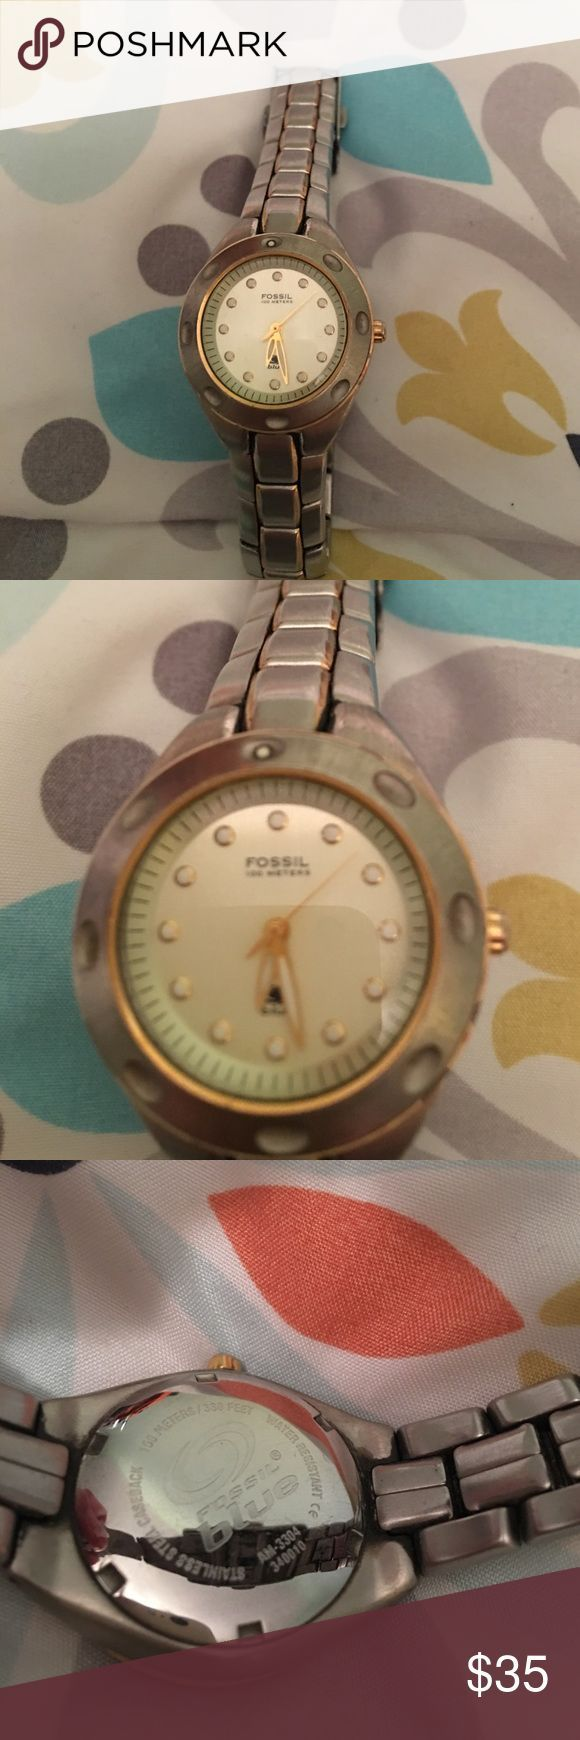 cool Montre pour femme : Fossil Blue women's watch Fossil Blue linked women's watch. Good conditi... Check more at http://flashmode.tn/tendance/mode/montre-femme/montre-pour-femme-fossil-blue-womens-watch-fossil-blue-linked-womens-watch-good-conditi/